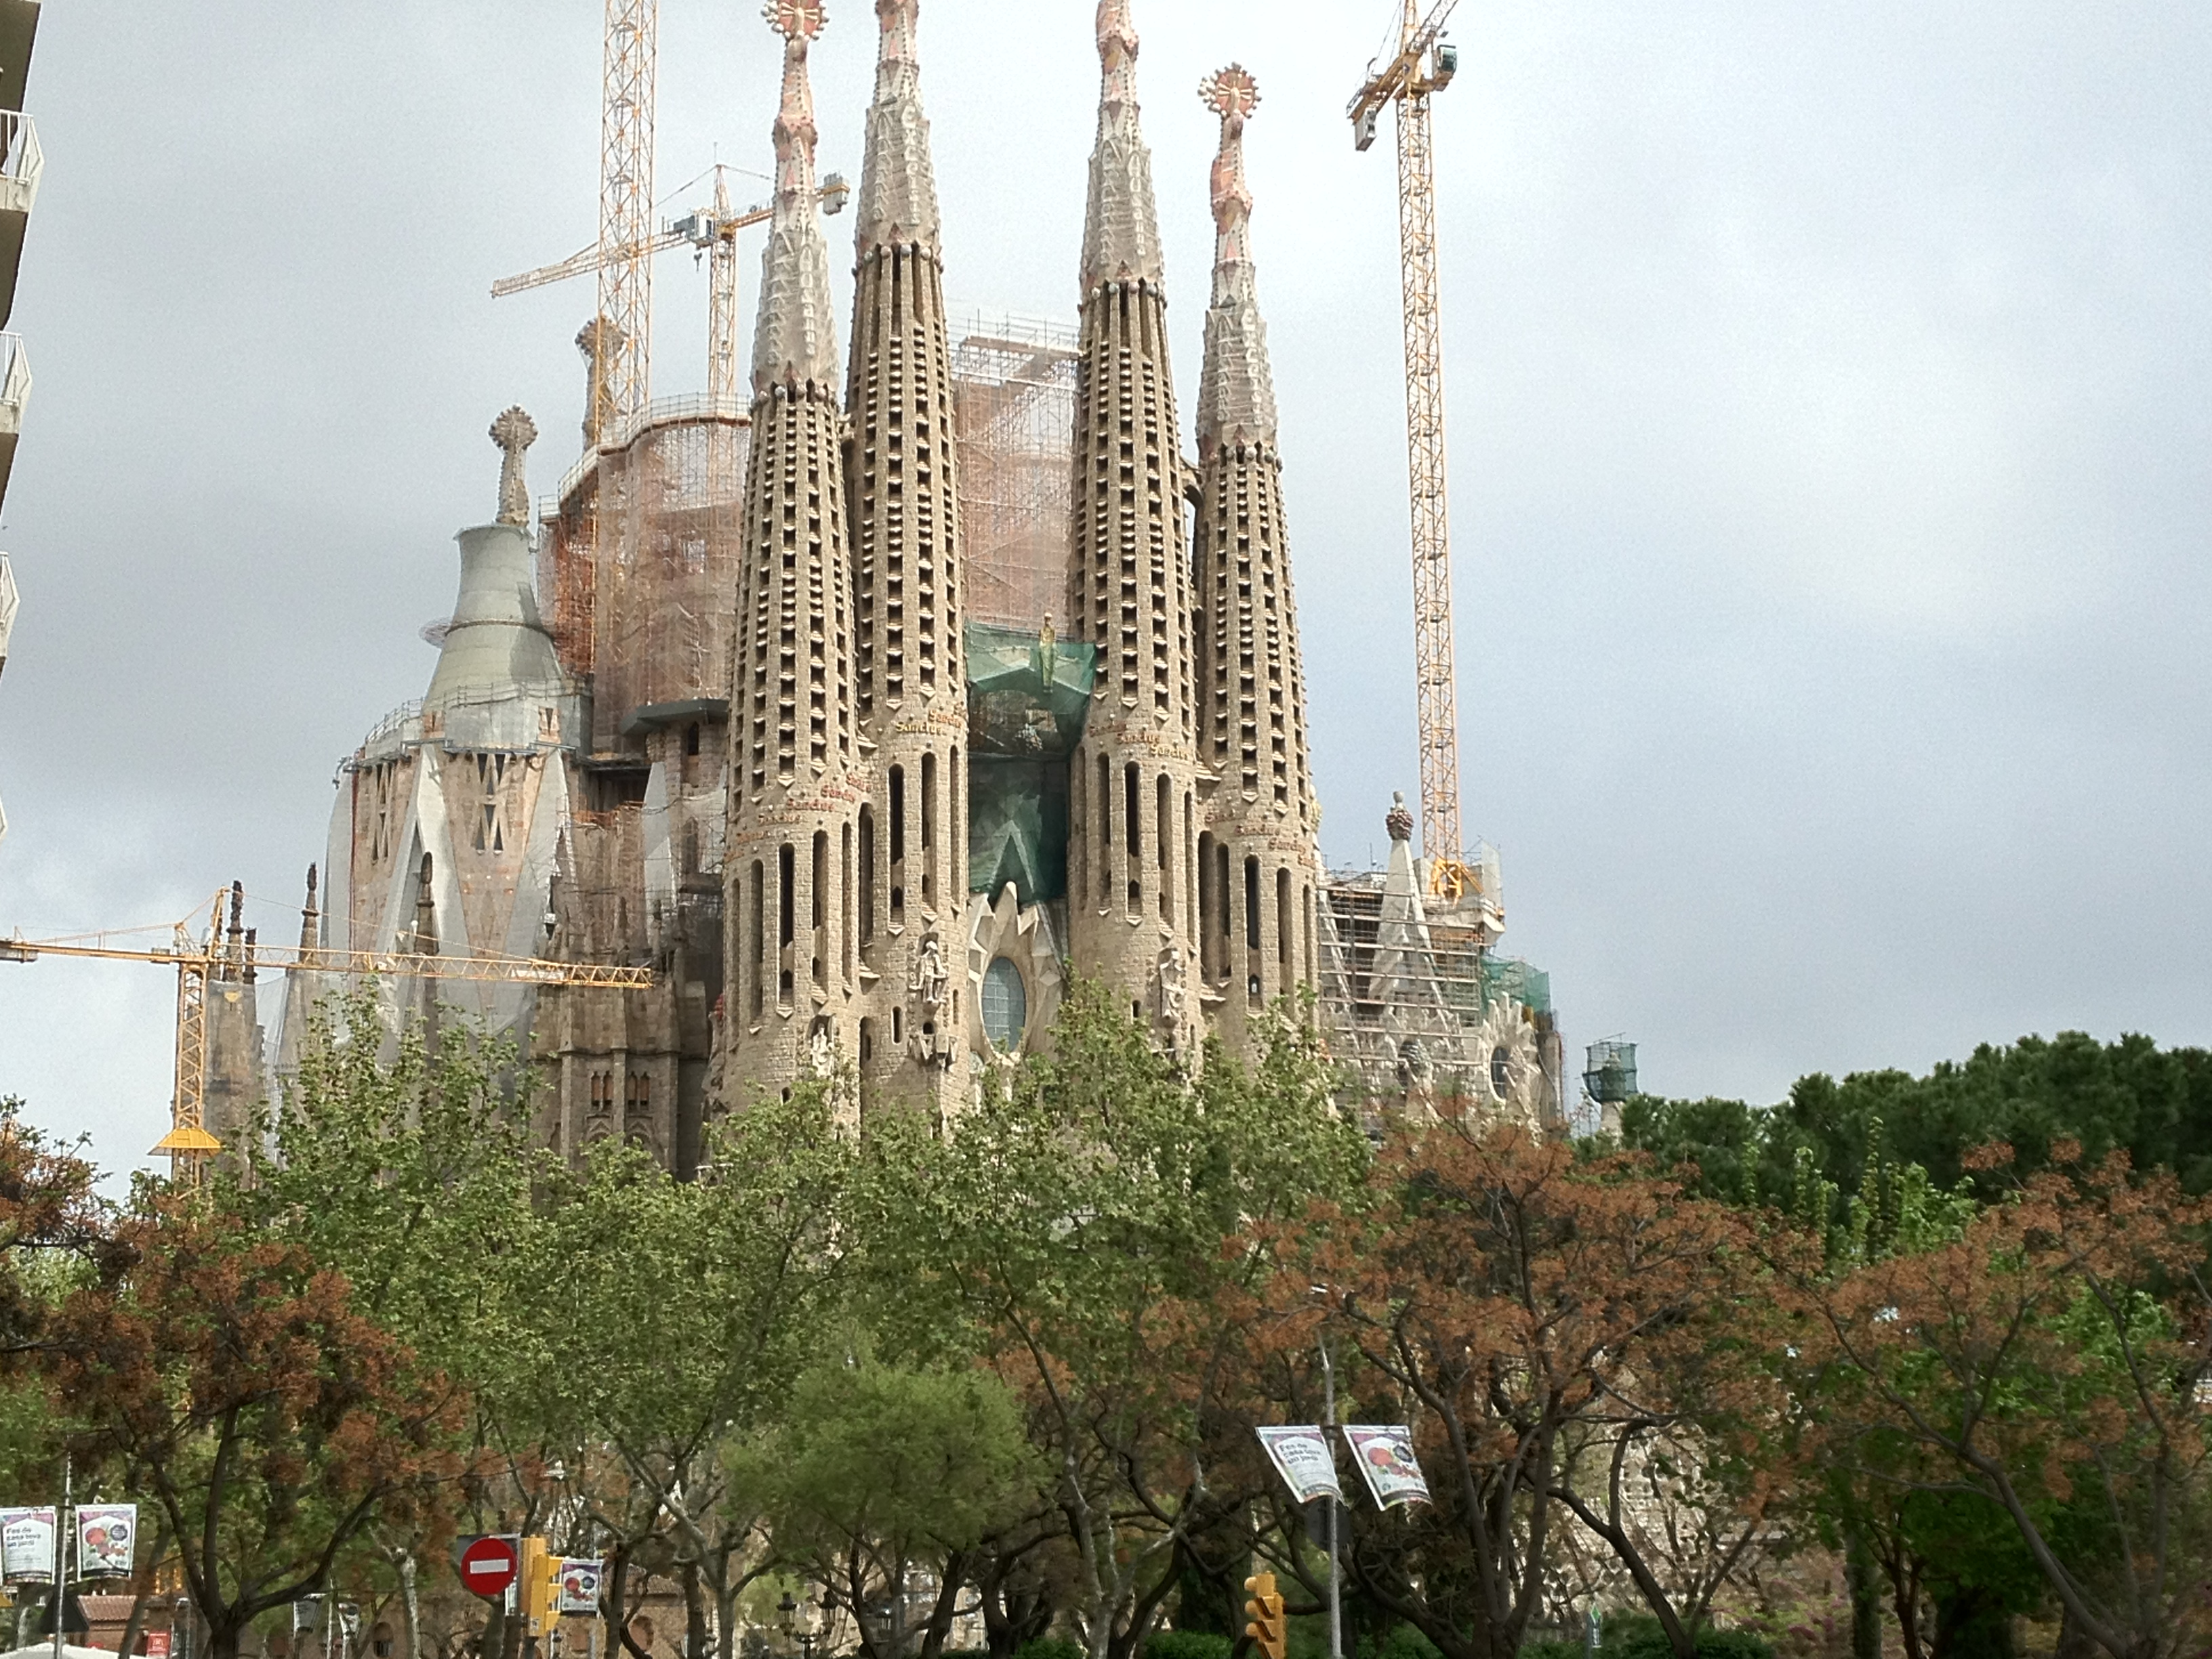 La Sagrada Familia 2012 - Gamesforlanguage.com